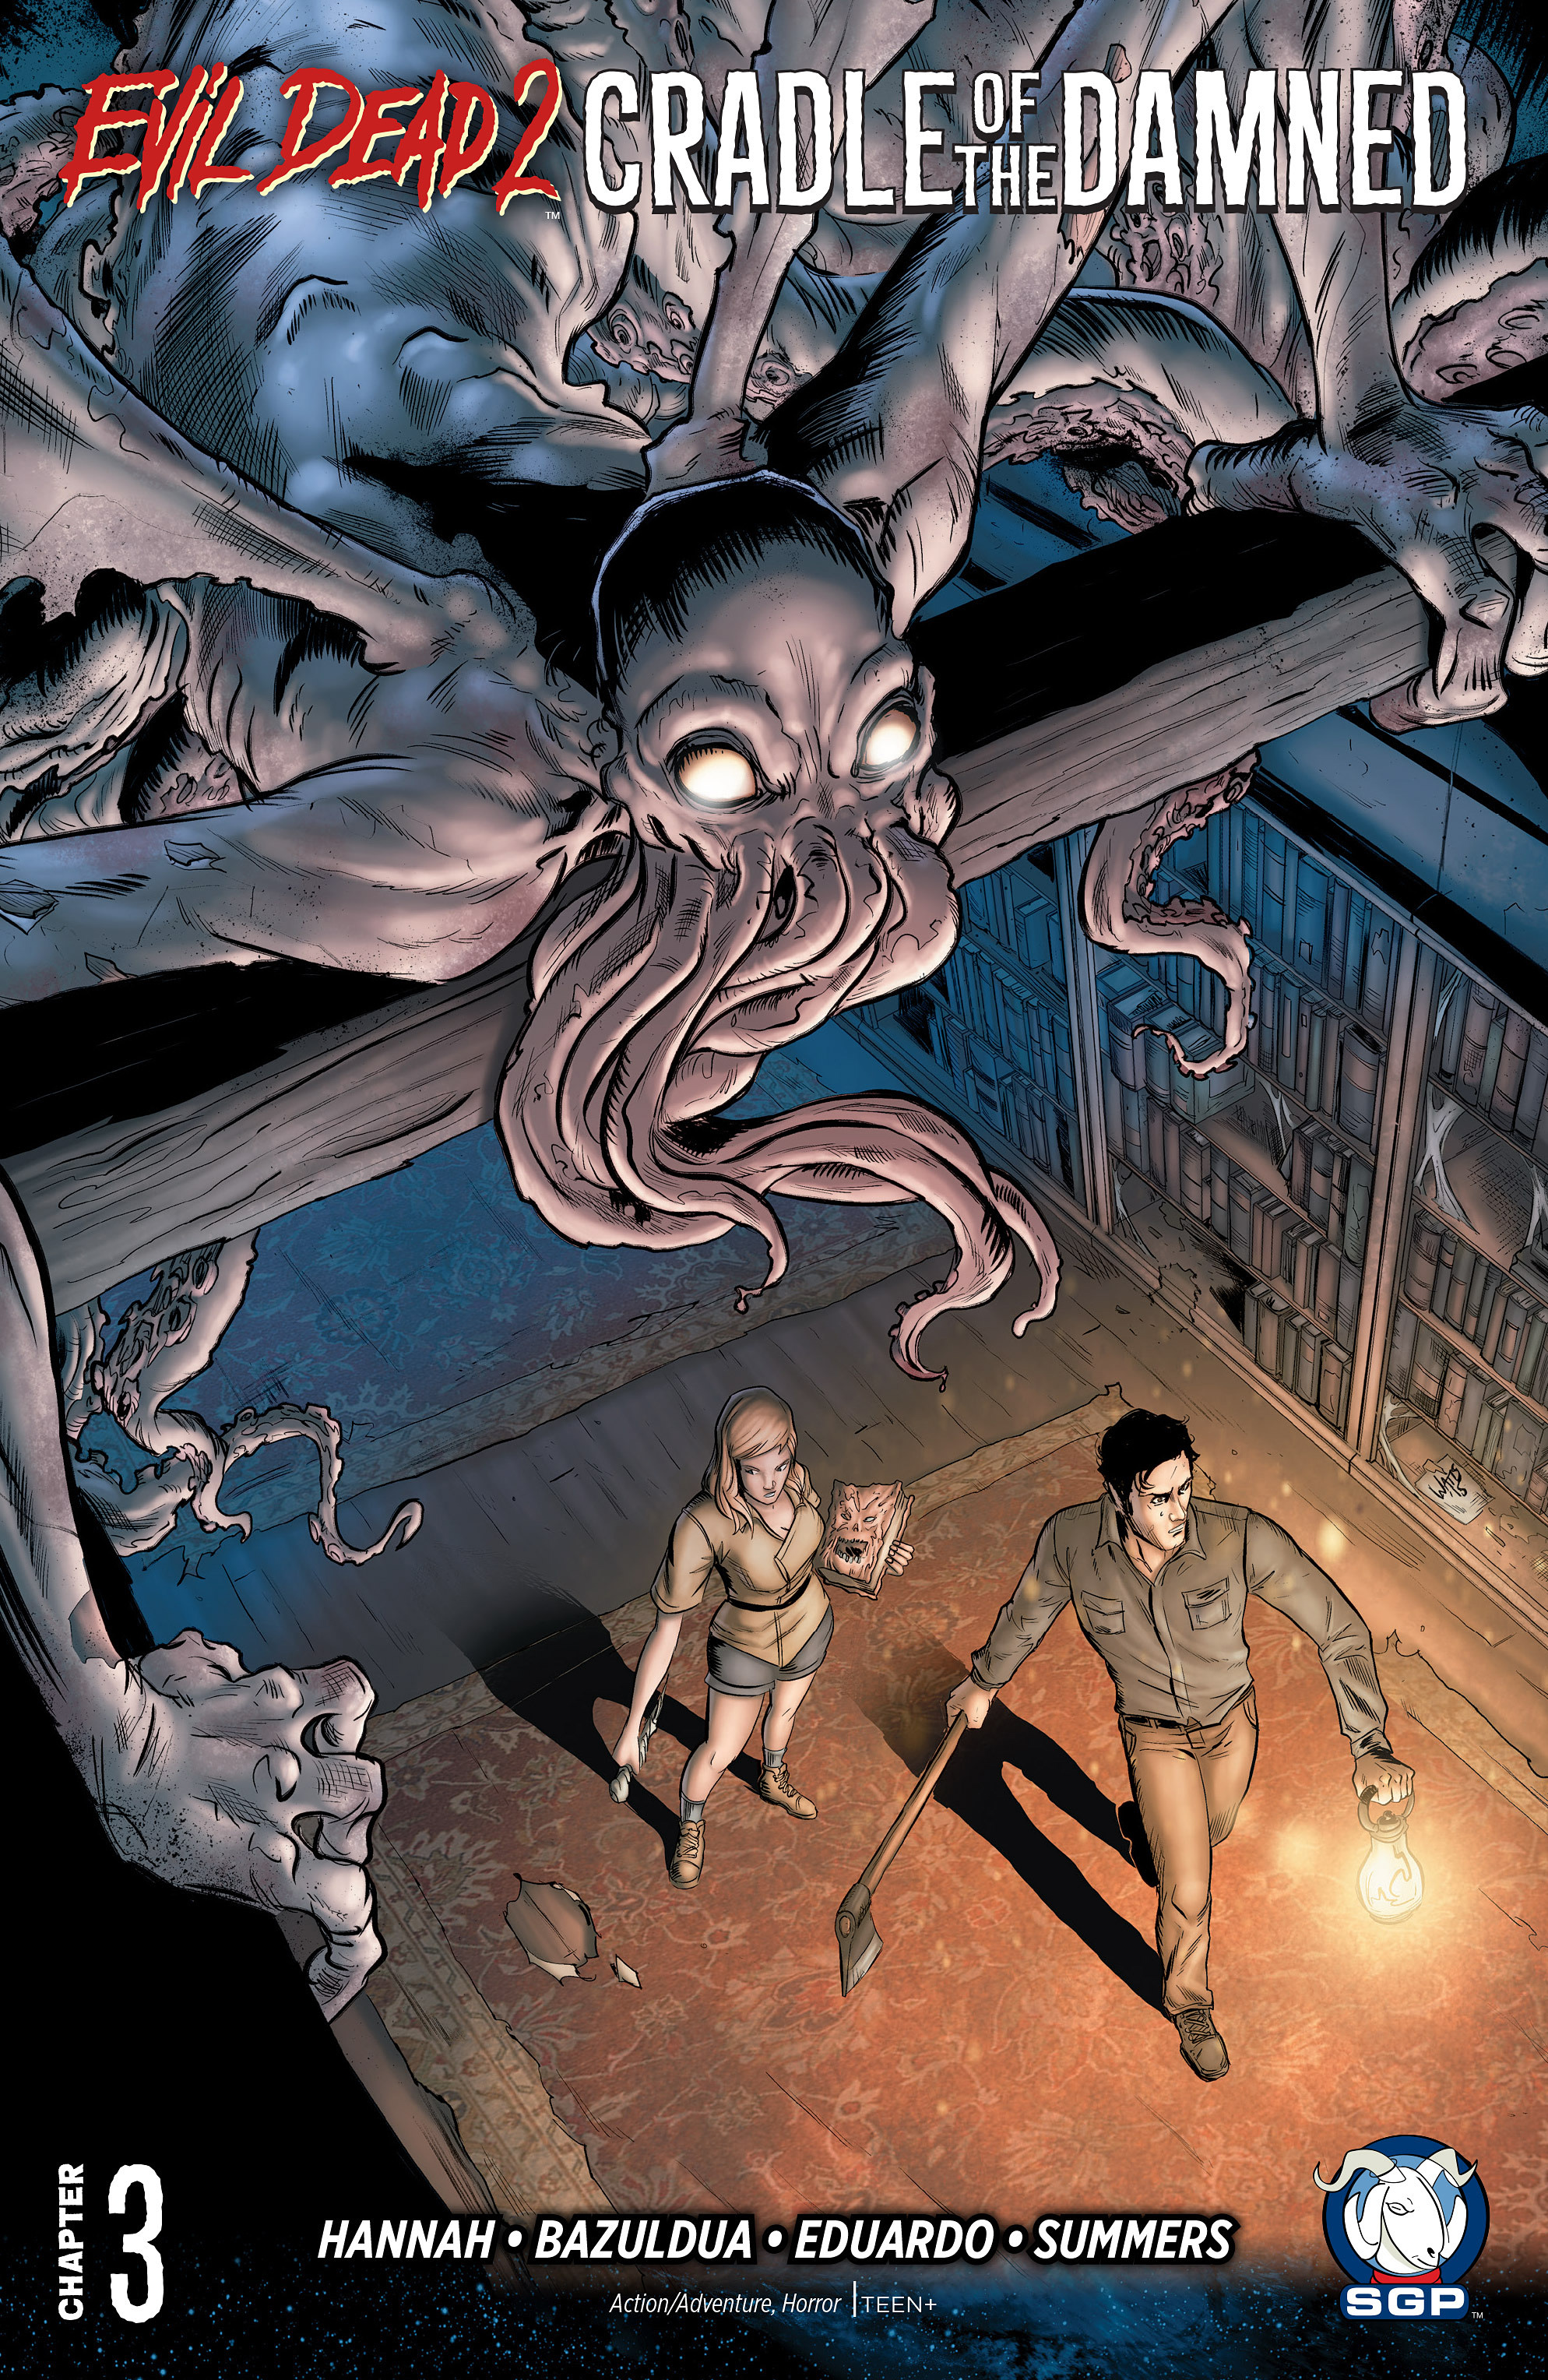 Read online Evil Dead 2: Cradle of the Damned comic -  Issue #3 - 1